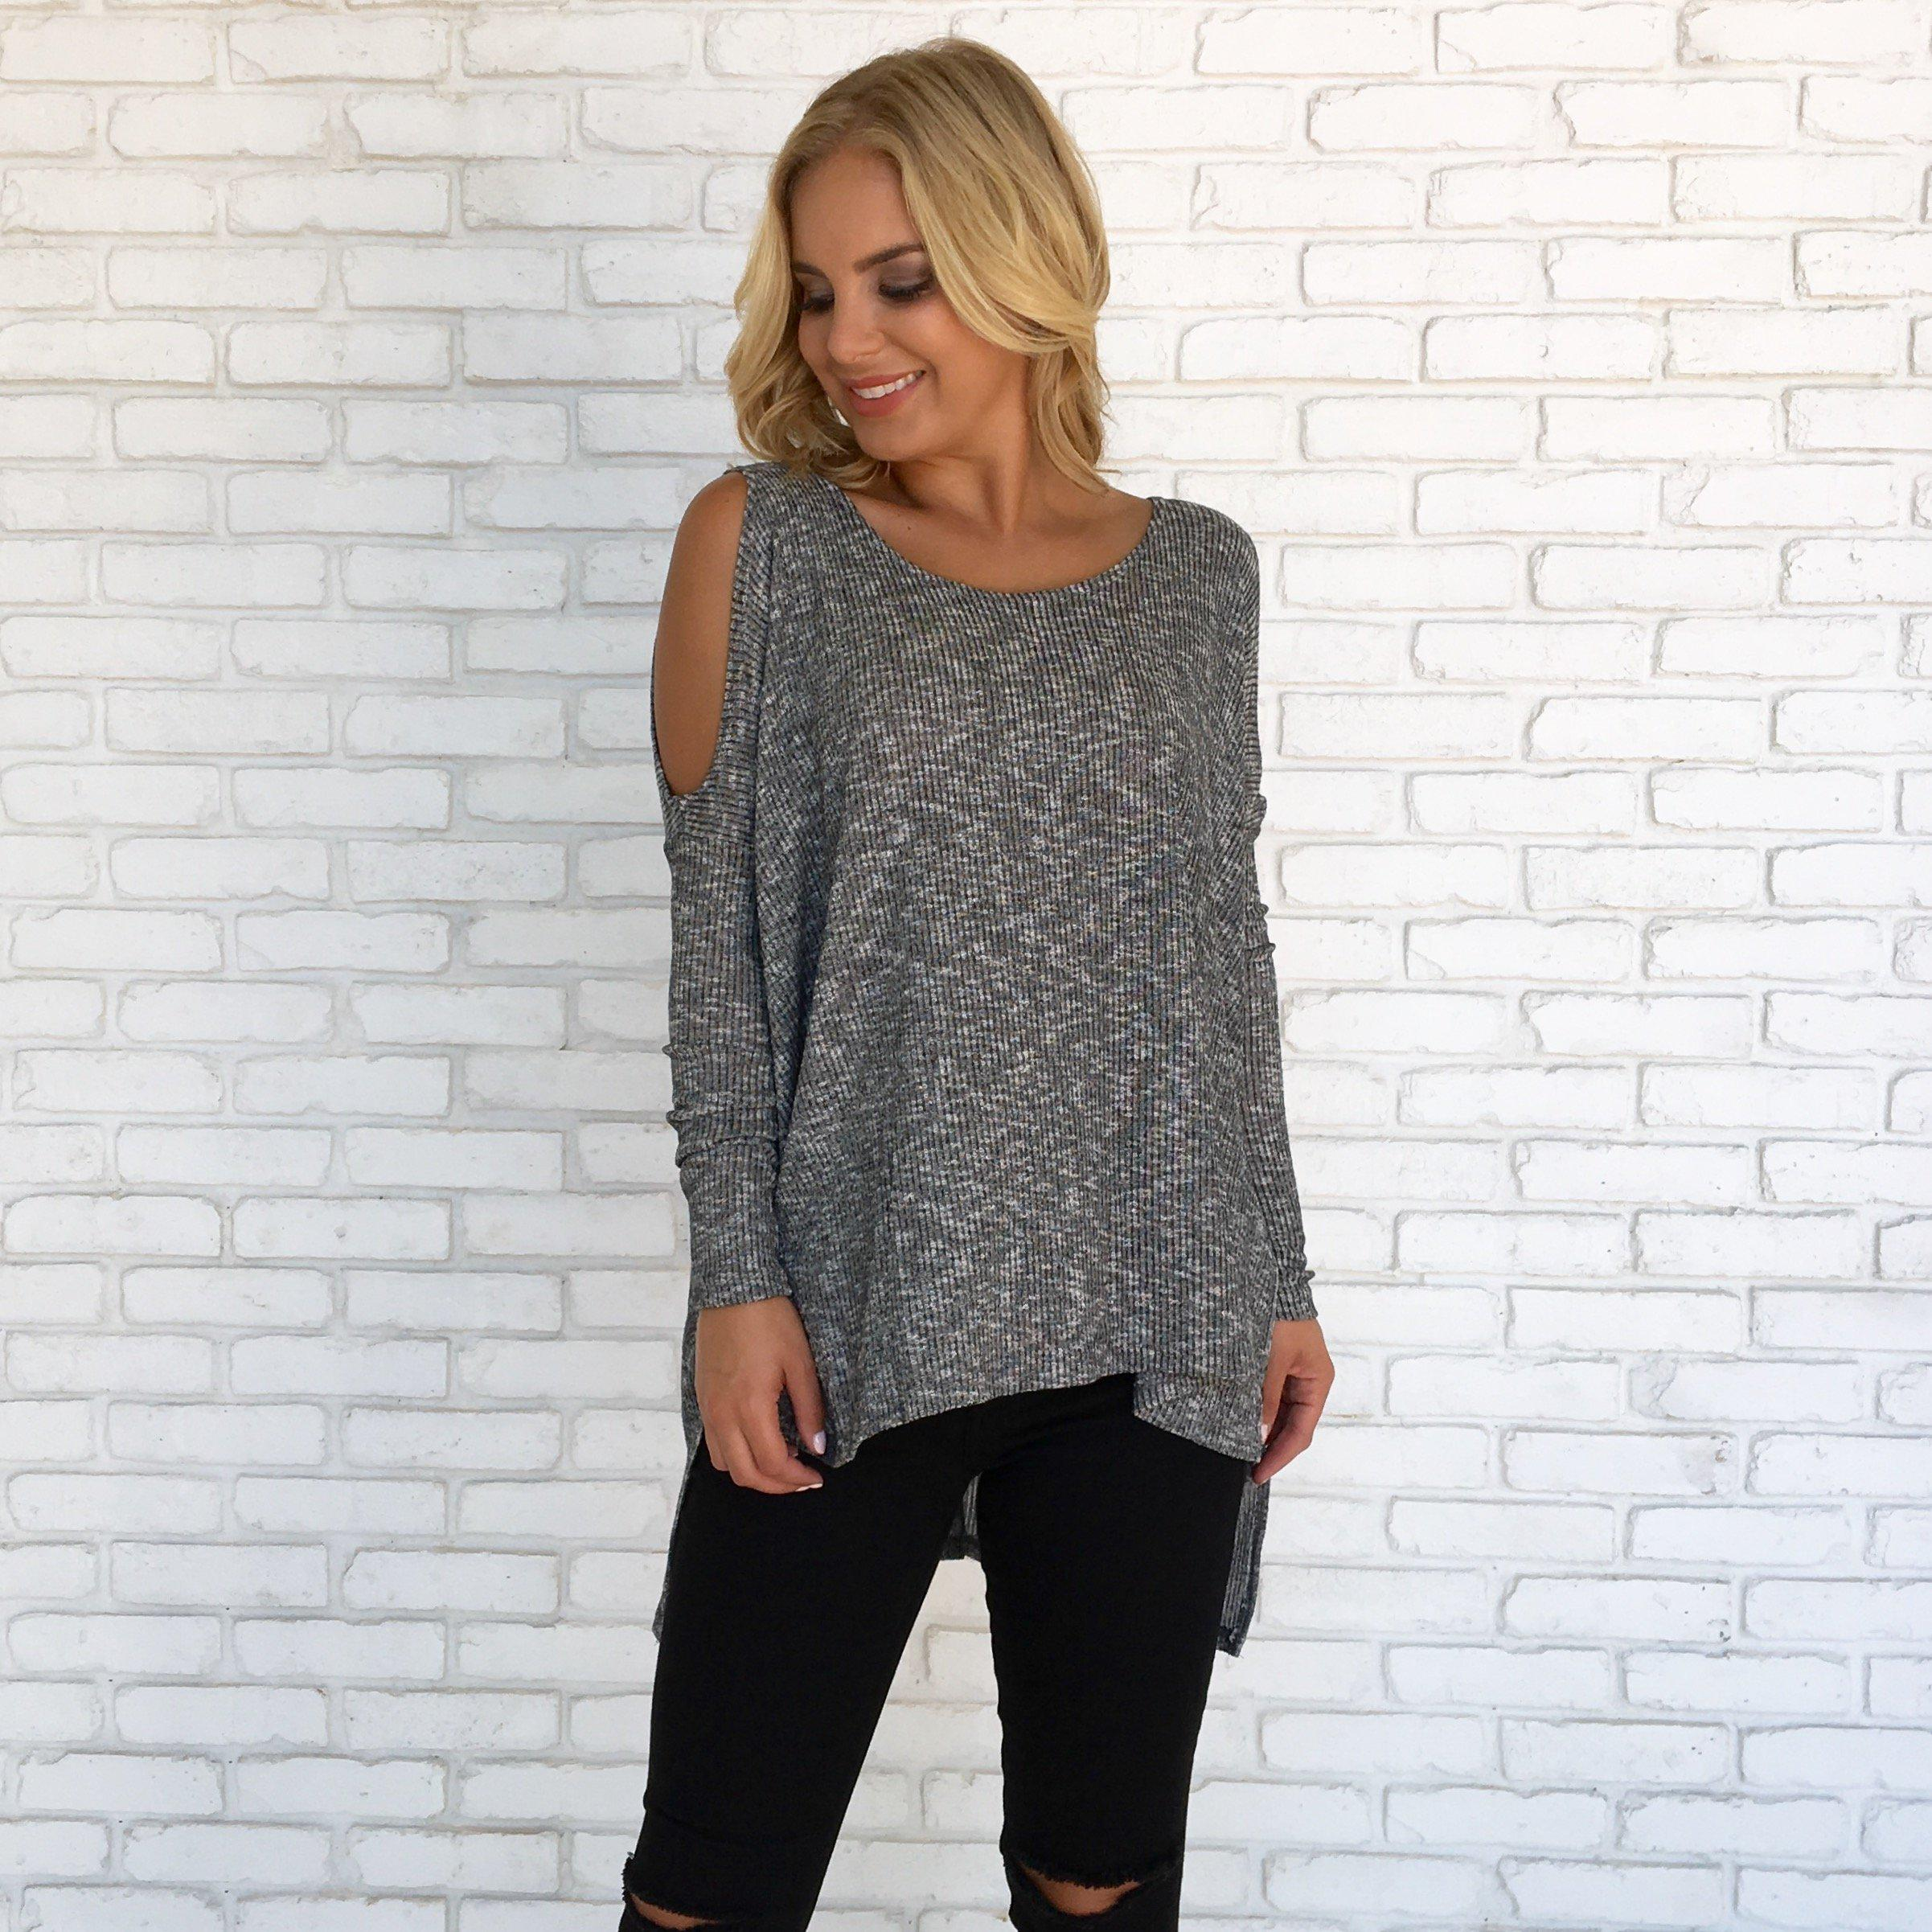 623849d10e3402 Speckle Cold Shoulder Knit Top from Dainty Hooligan | Fall/Winter